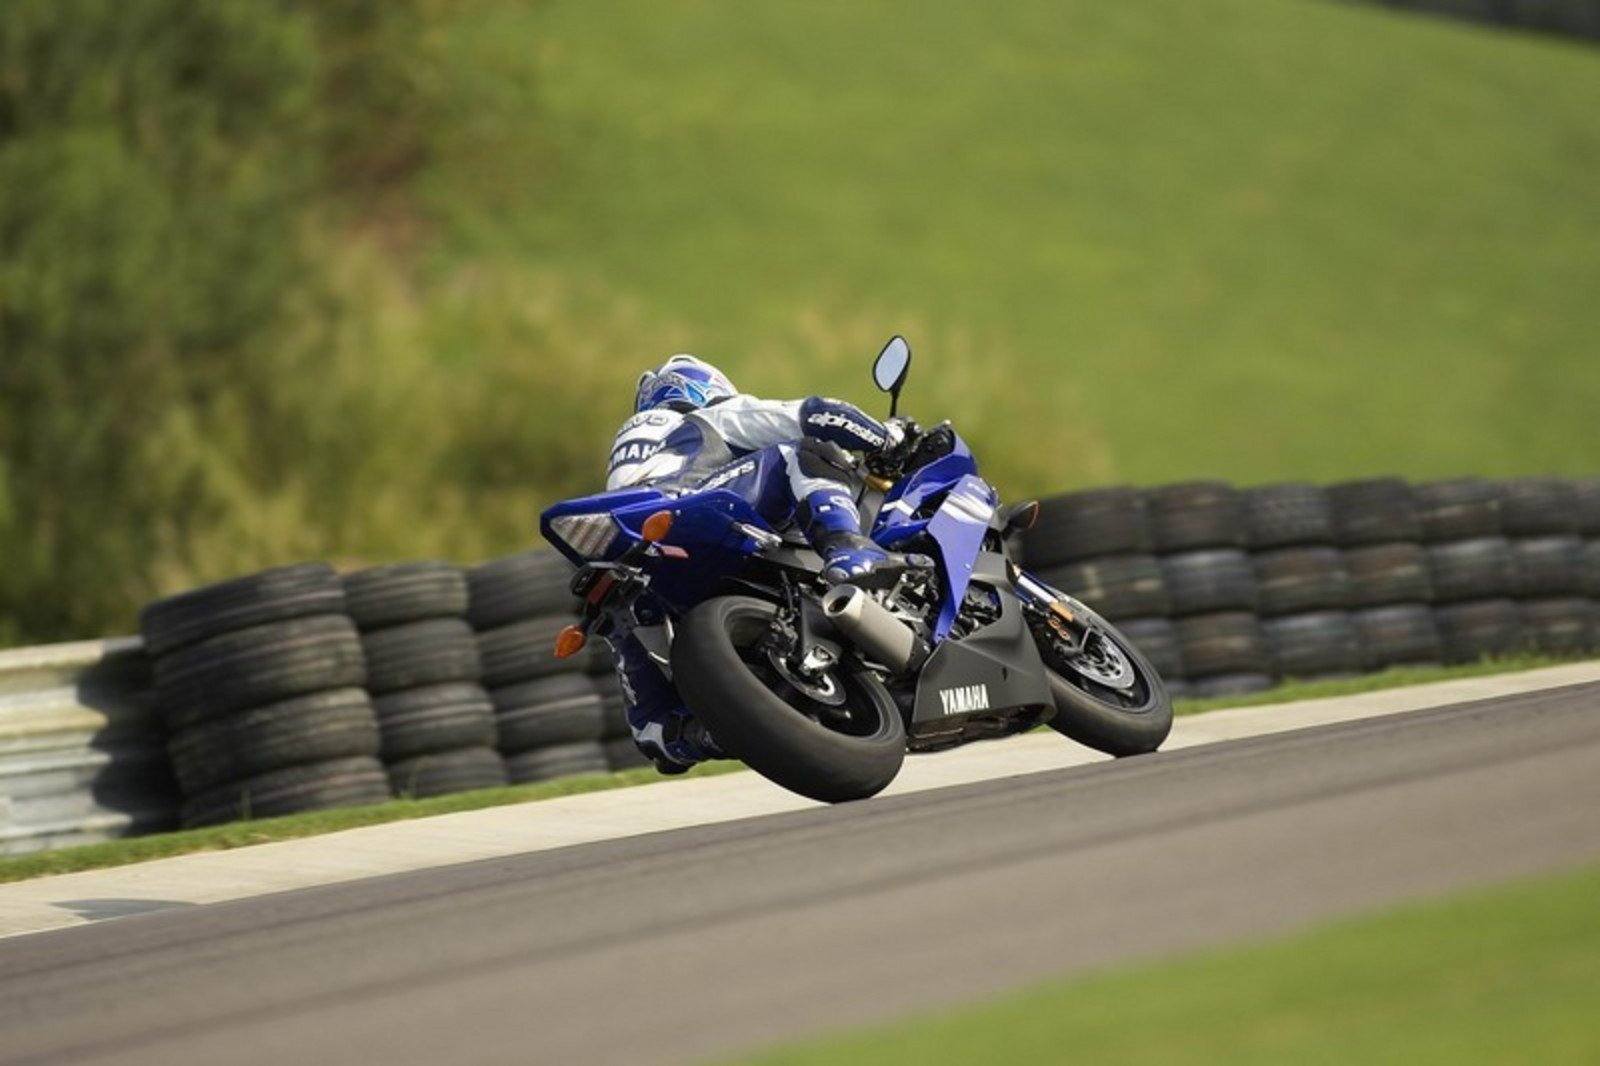 2006 yamaha yzf r6 picture 45424 motorcycle review for 2006 yamaha yzf r6